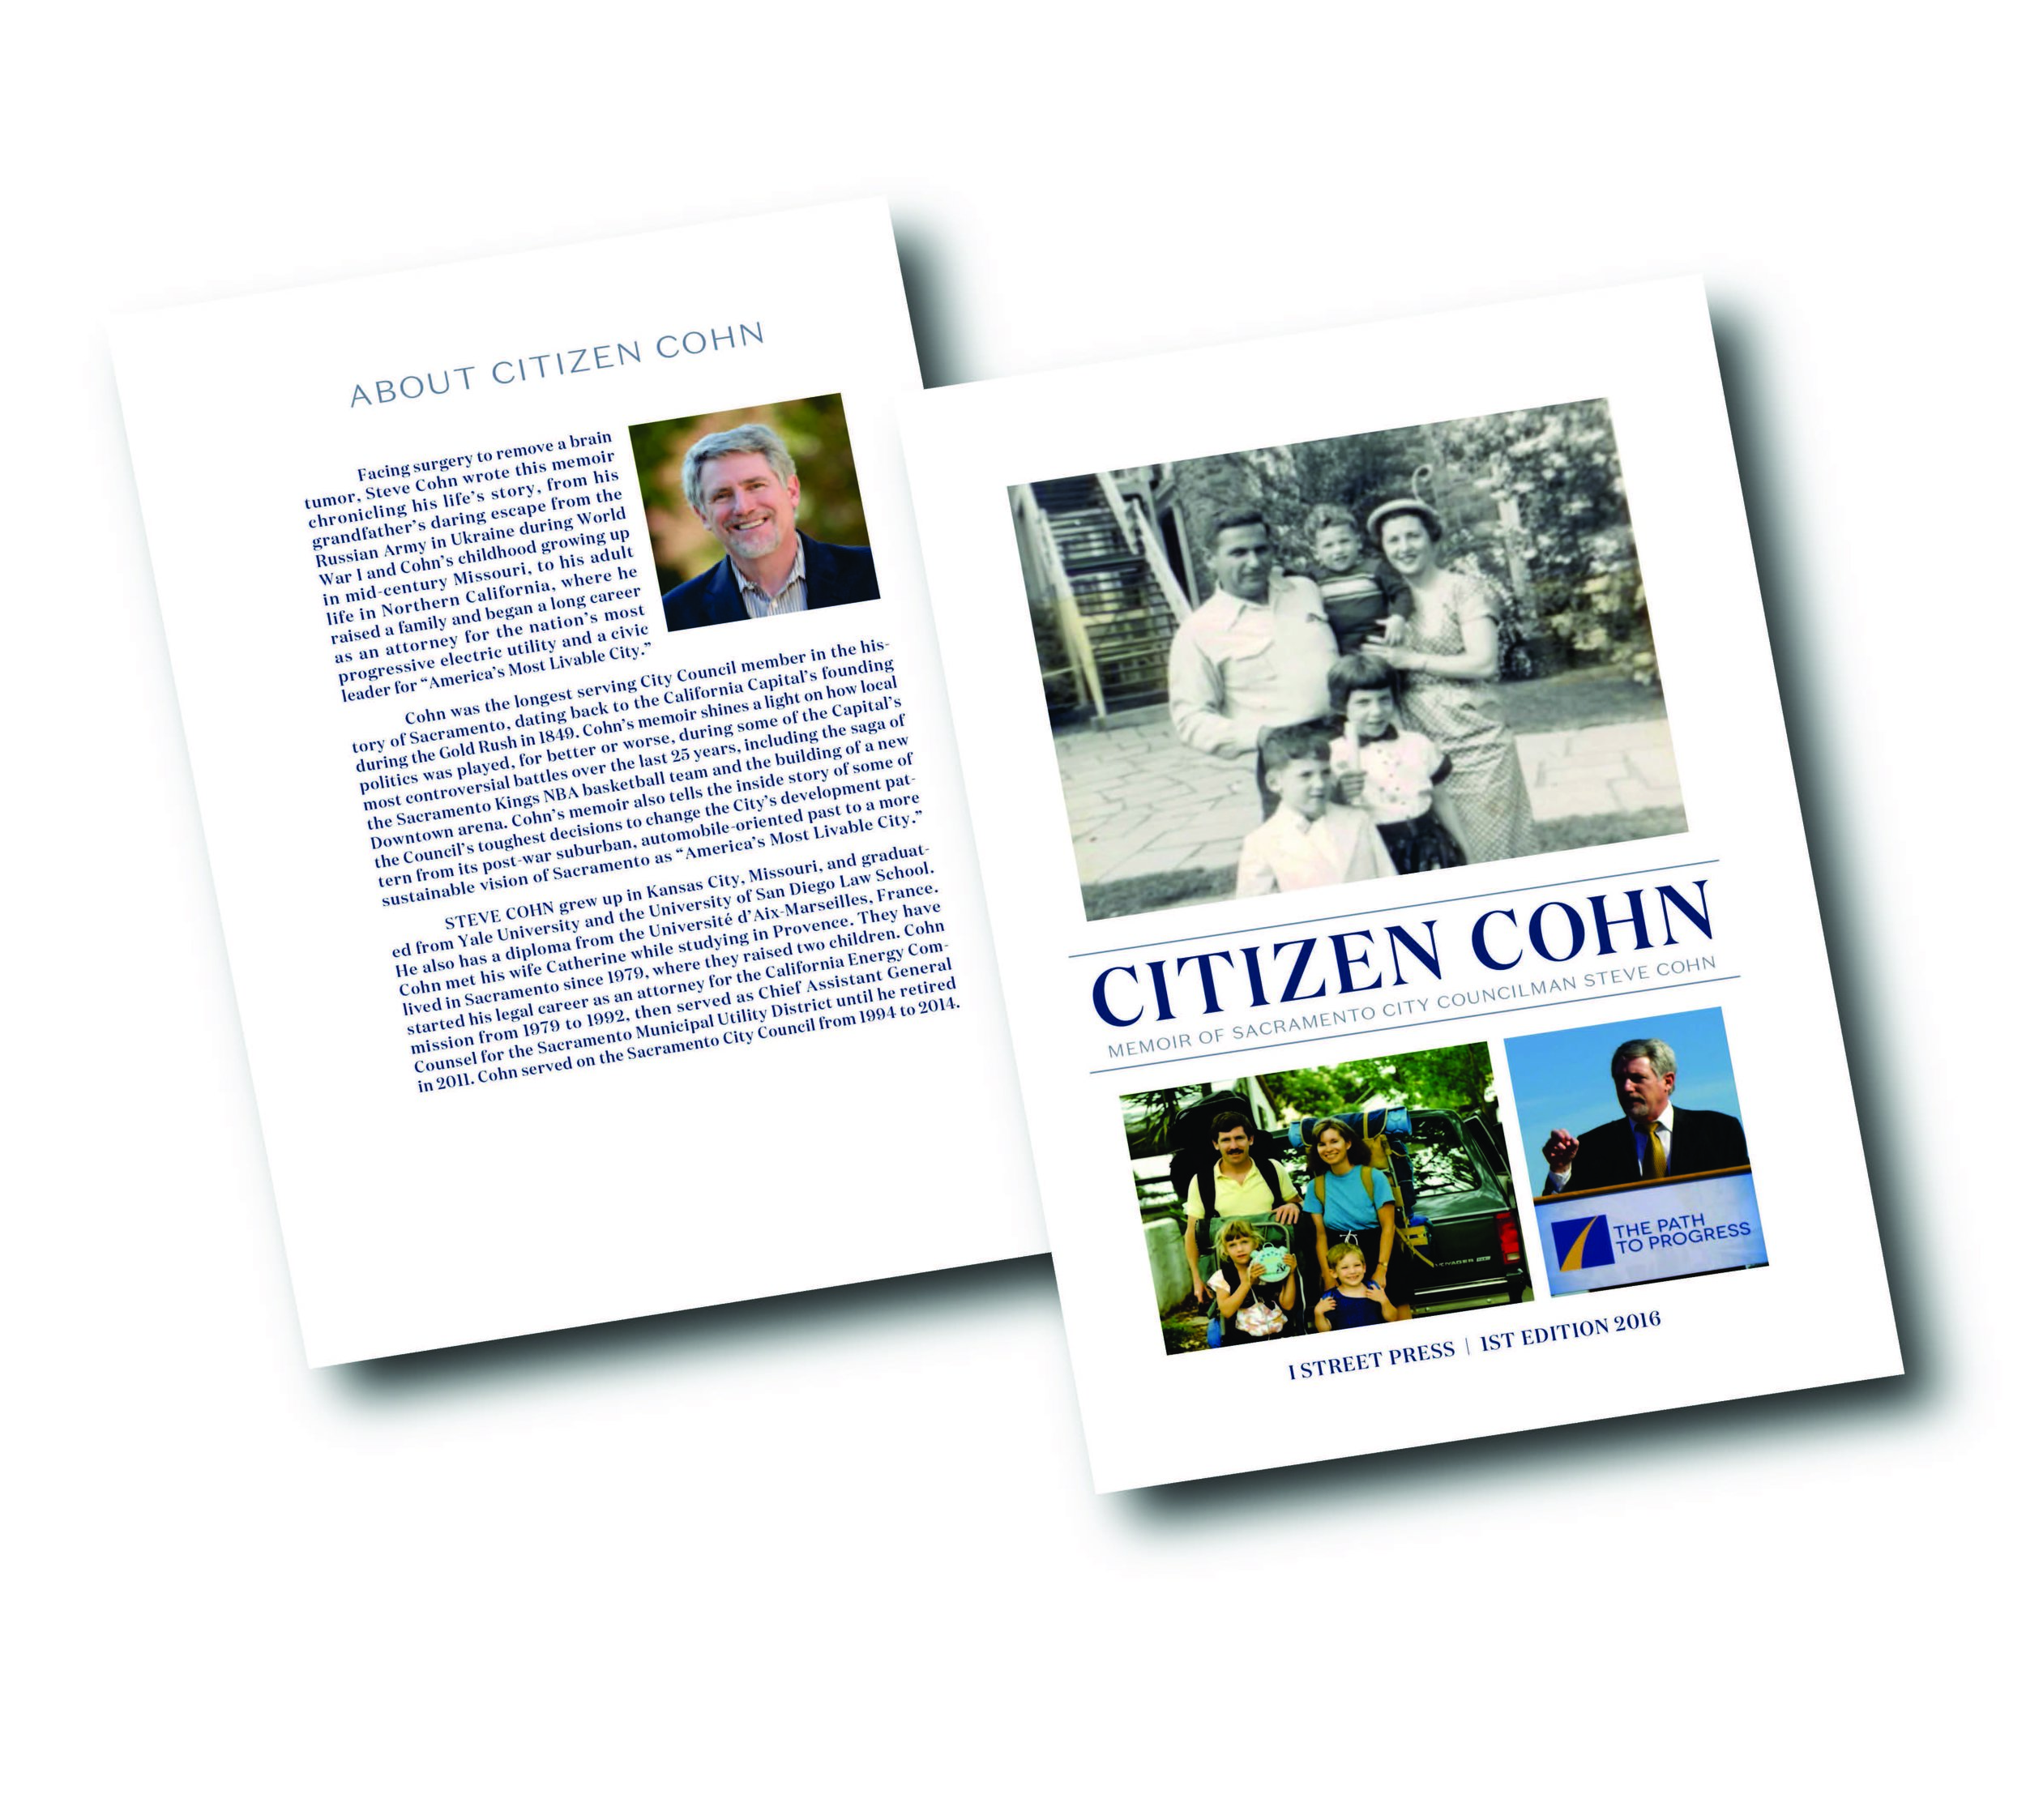 CITIZEN COHN  is available now in paperback from Amazon for $9.99 and from Kindle for $4.99.